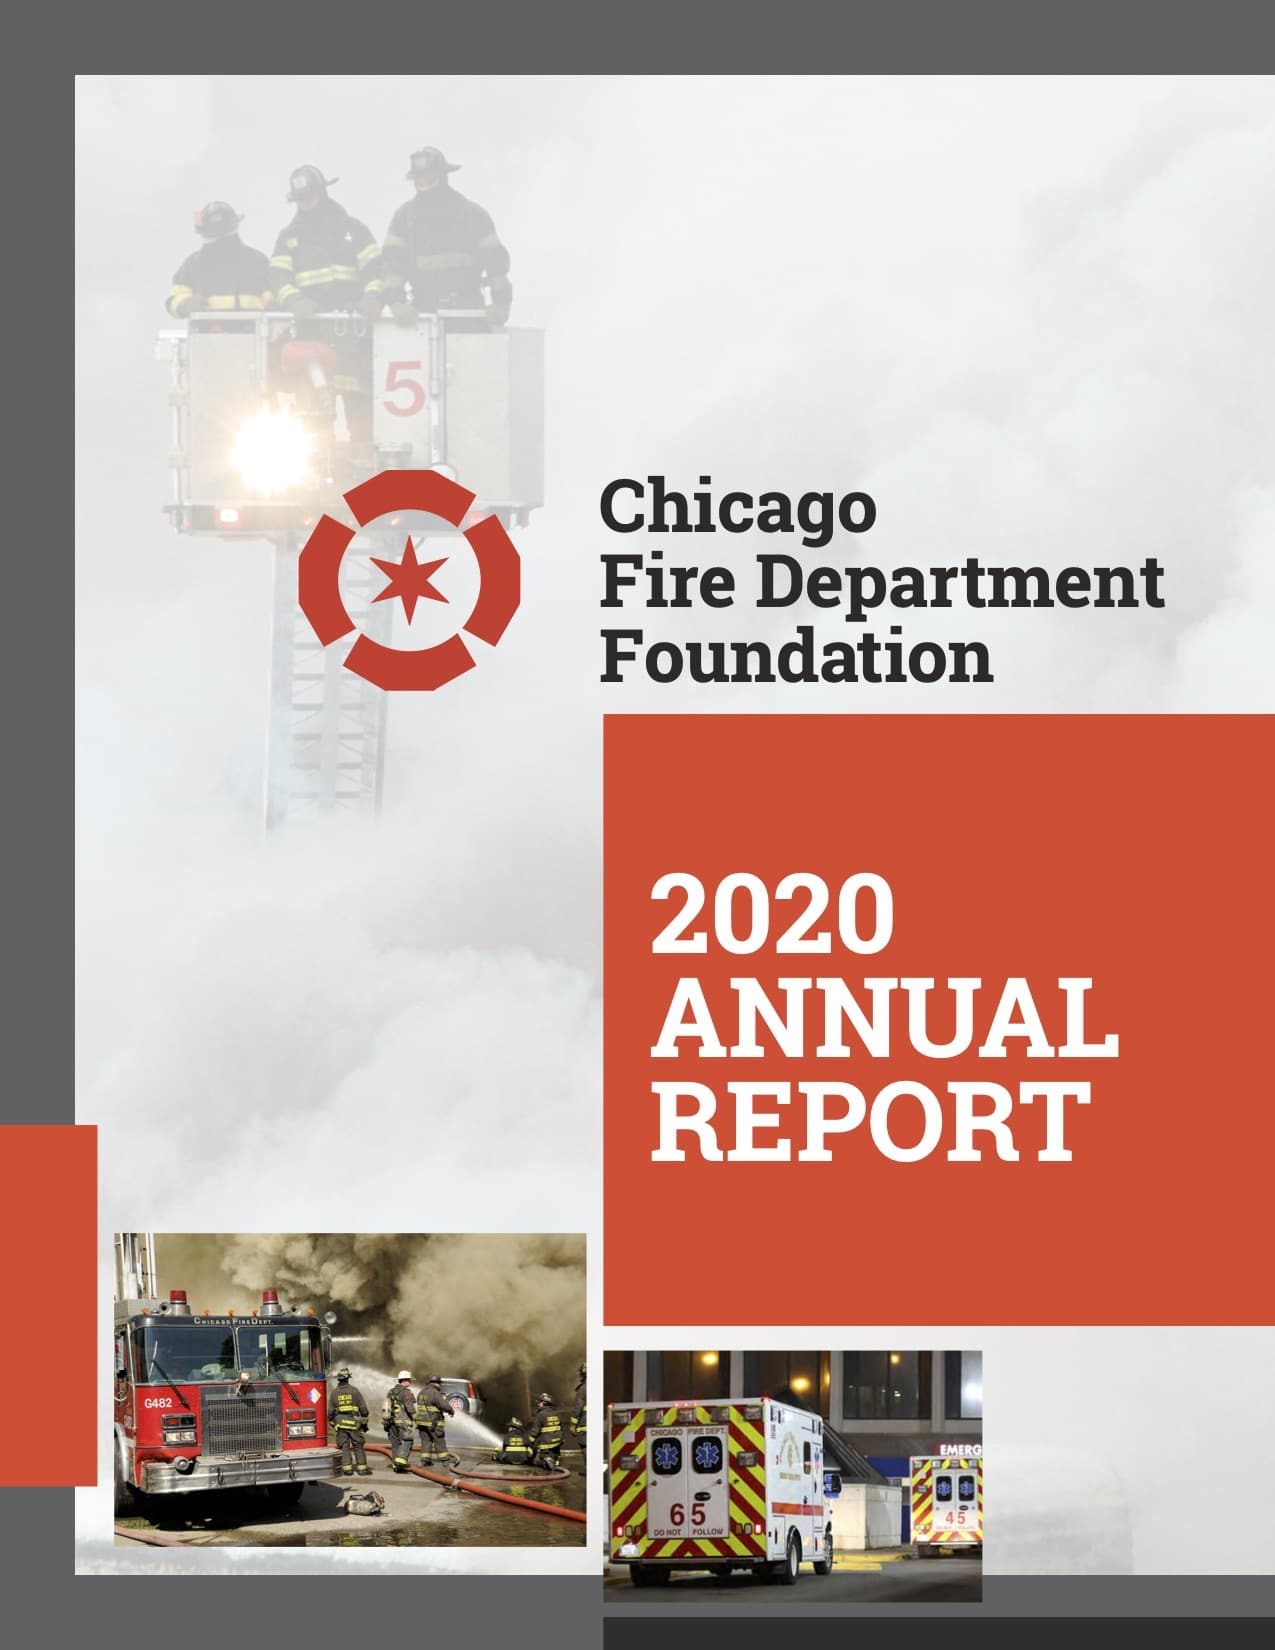 CFD Foundation 2020 Annual Report